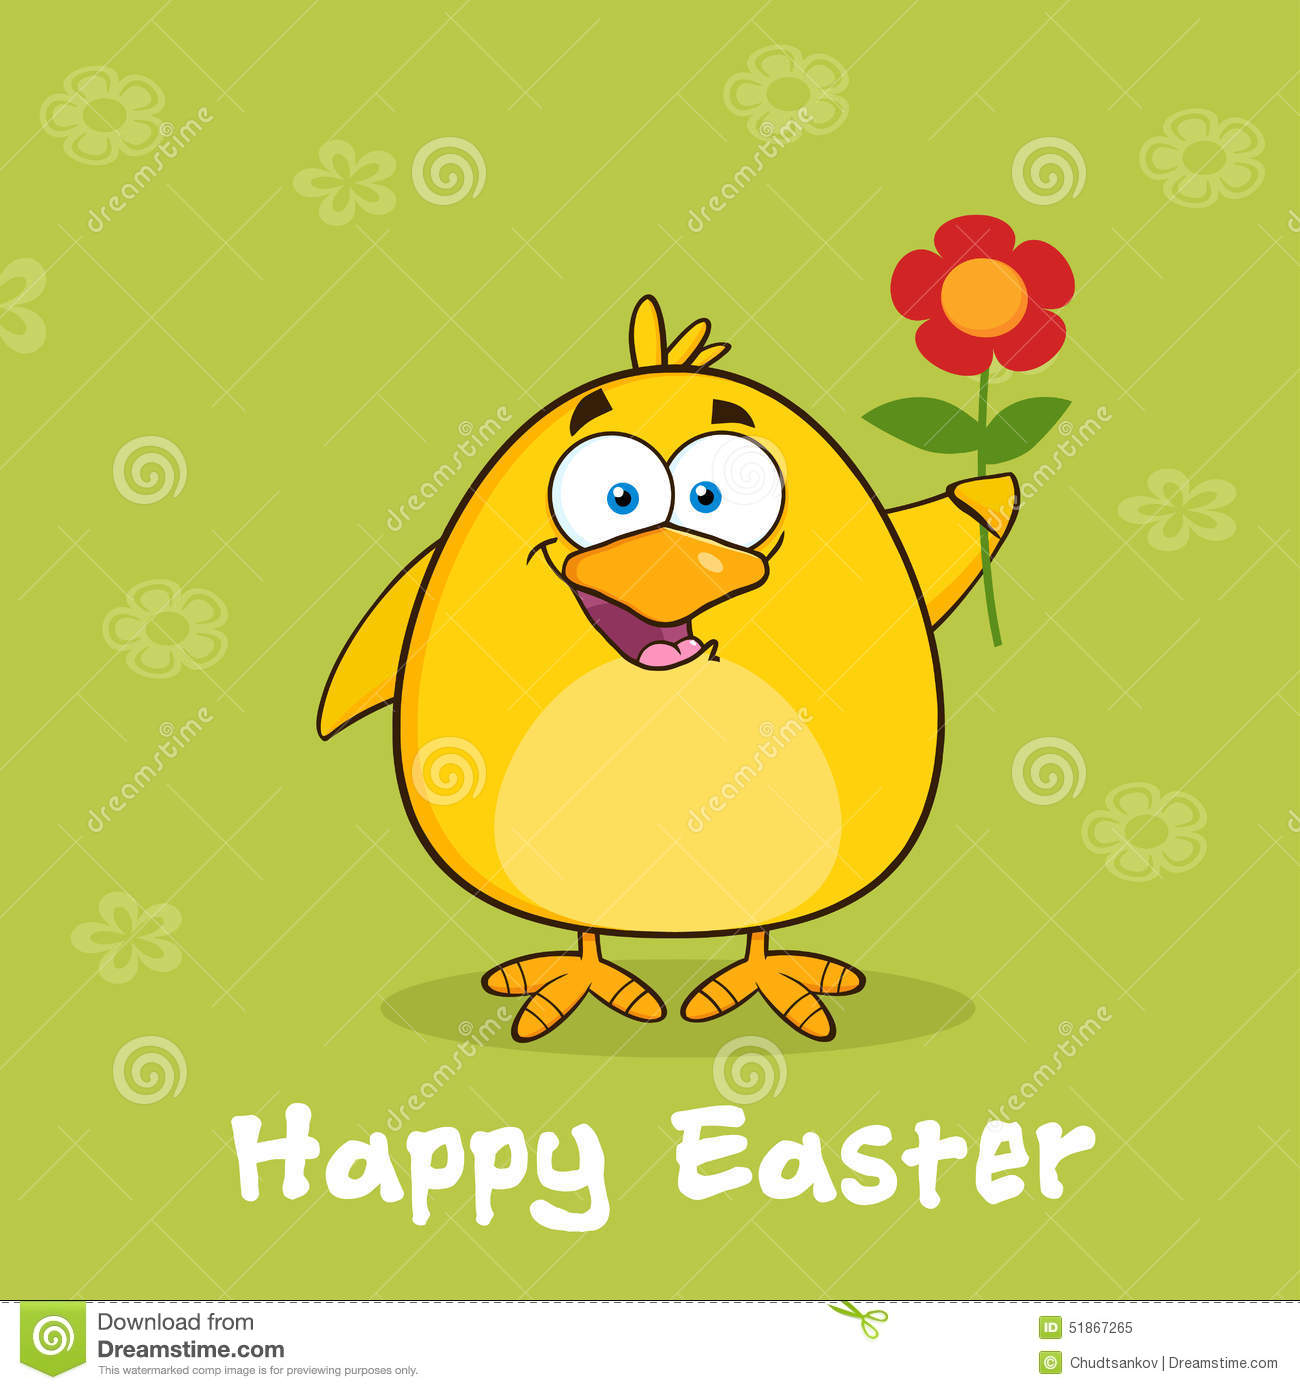 Happy easter with yellow chick cartoon character with a red daisy happy easter with yellow chick cartoon character with a red daisy flower izmirmasajfo